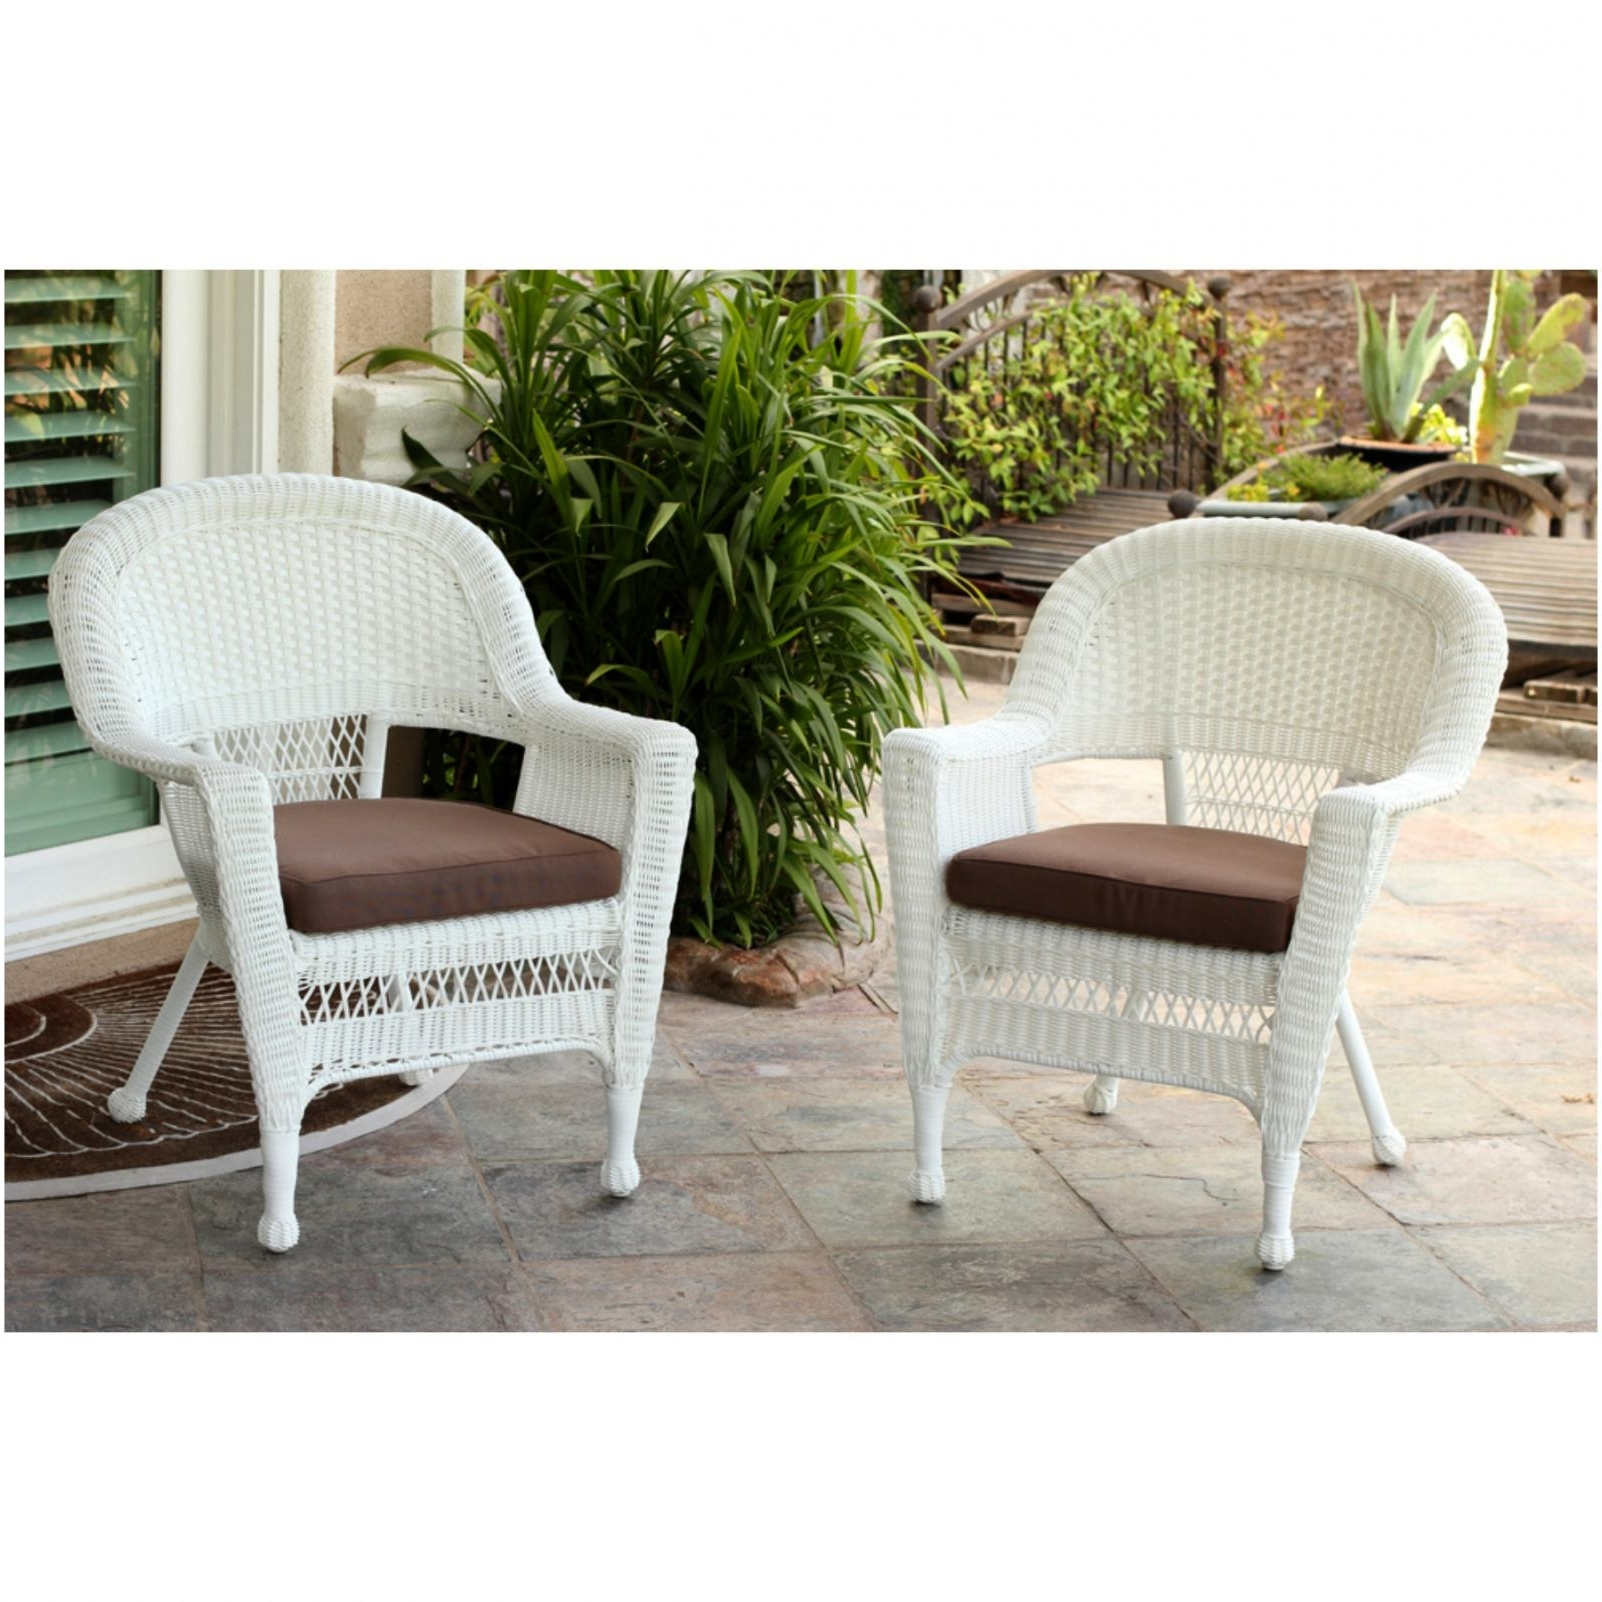 Kohl's Patio Conversation Sets With Regard To Most Popular Secrets Kohls Outdoor Furniture Patio Savrsenizgled Com (Gallery 3 of 20)